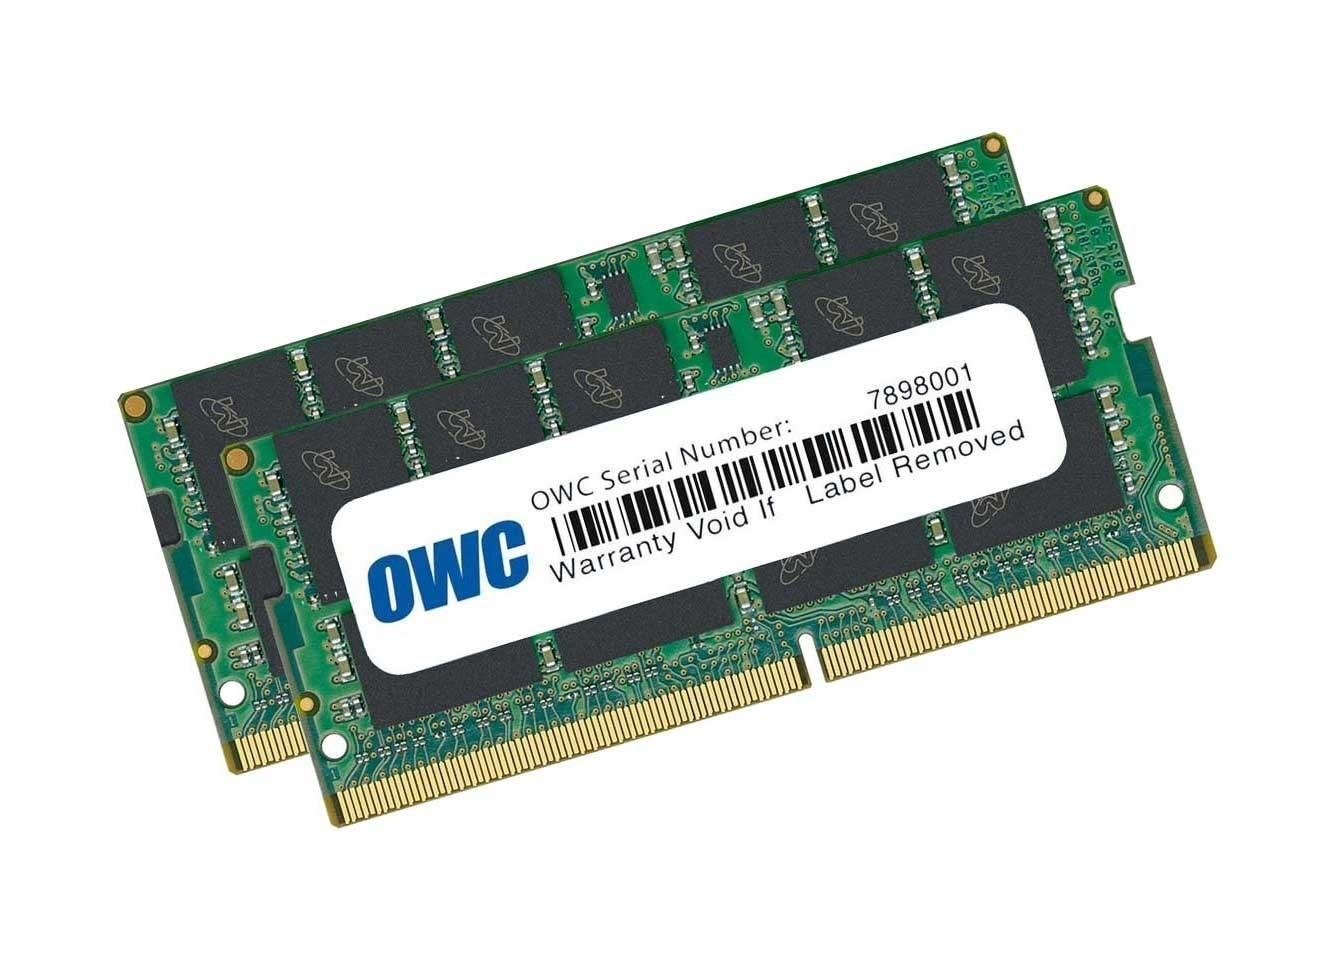 64.0GB (2 x 32GB) 2666MHz DDR4 SO-DIMM PC4-21300 SO-DIMM 260 Pin Memory Upgrade Kit, OWC2666DDR4S64P